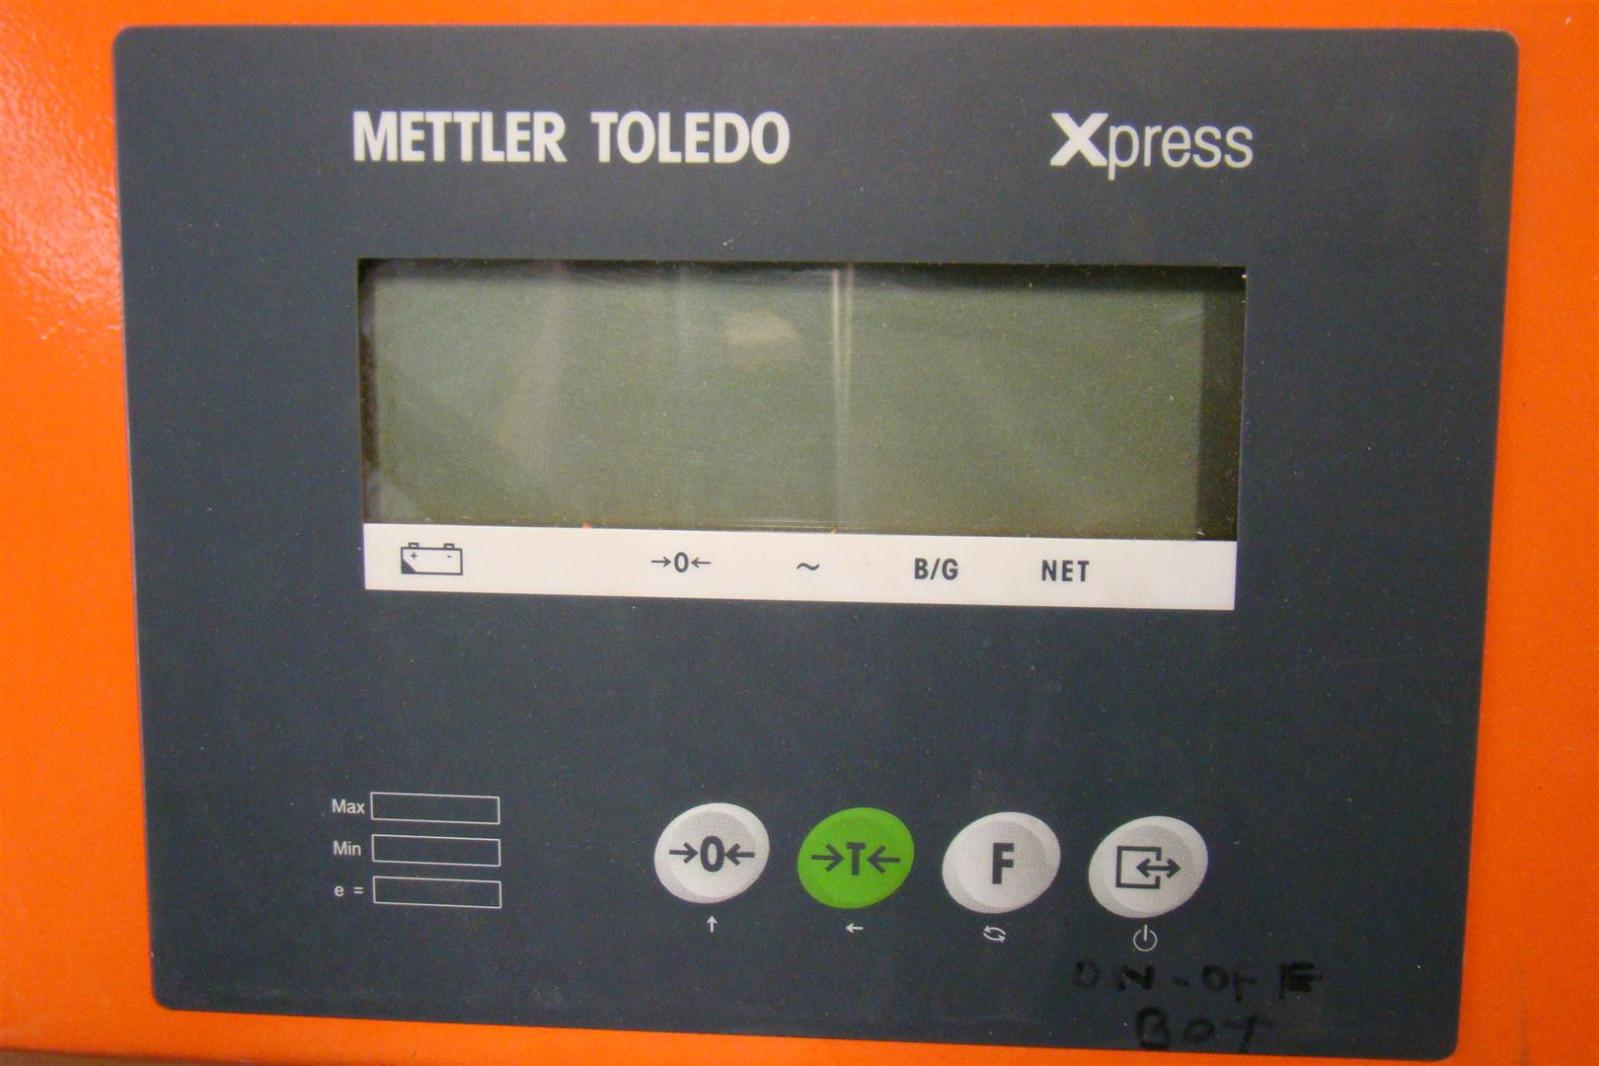 Mettler toledo Xpress floor Manual